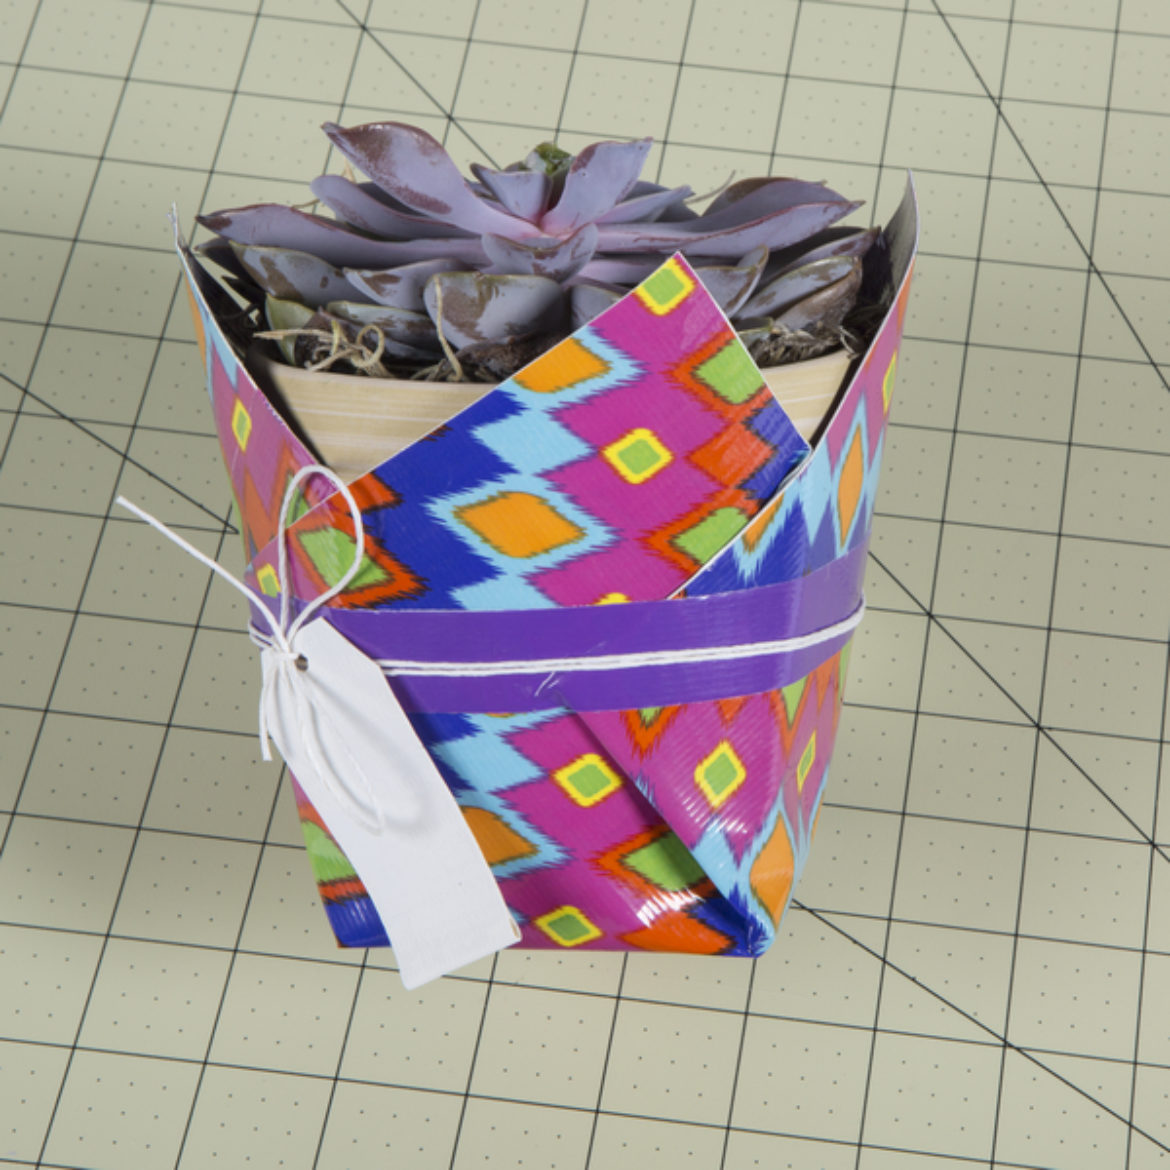 Tag made in the previous two steps wrapped around the pot and secured